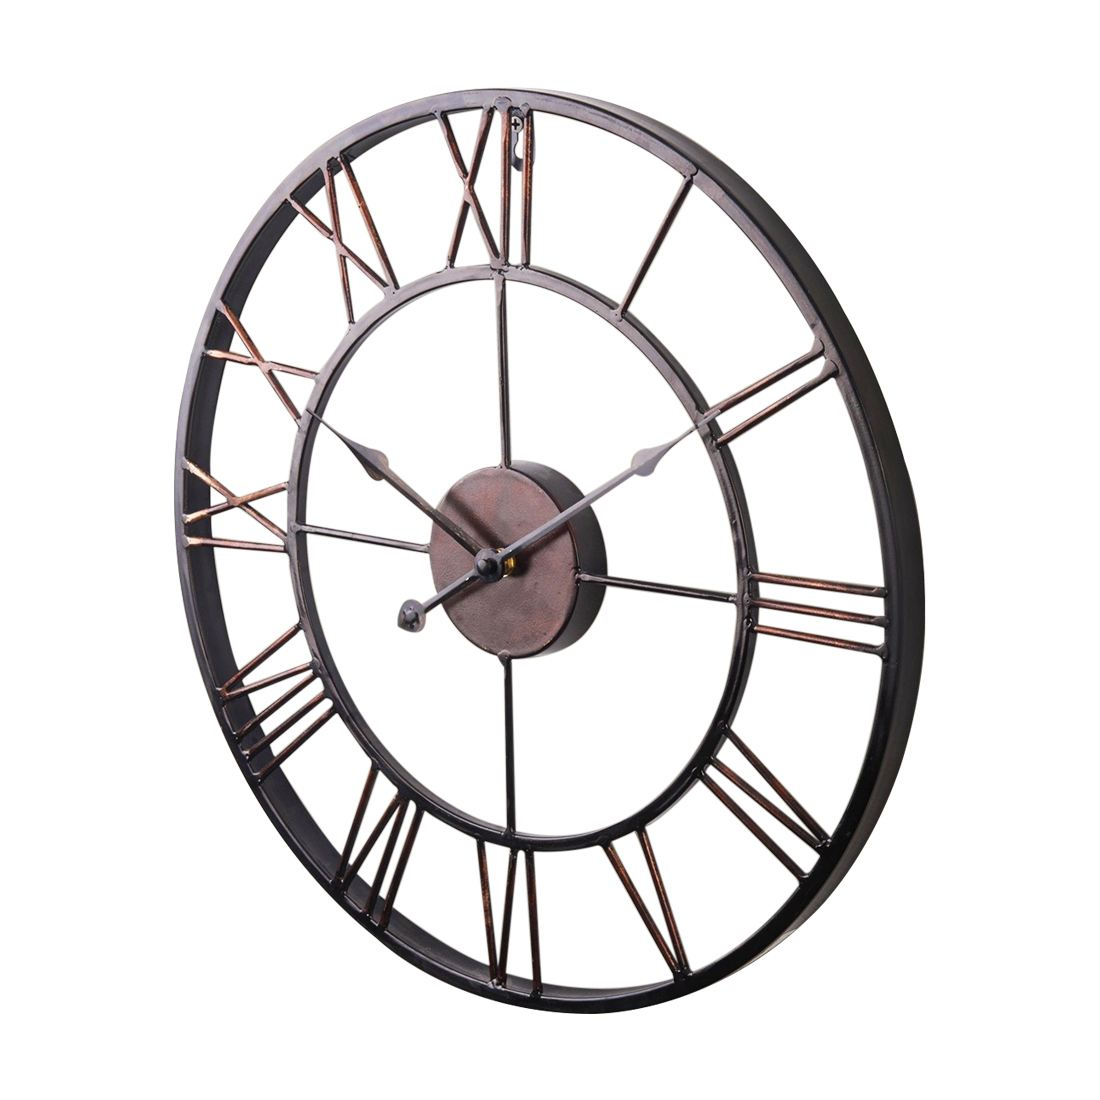 szs hot extra large vintage style statement metal wall clock country style chocolate color